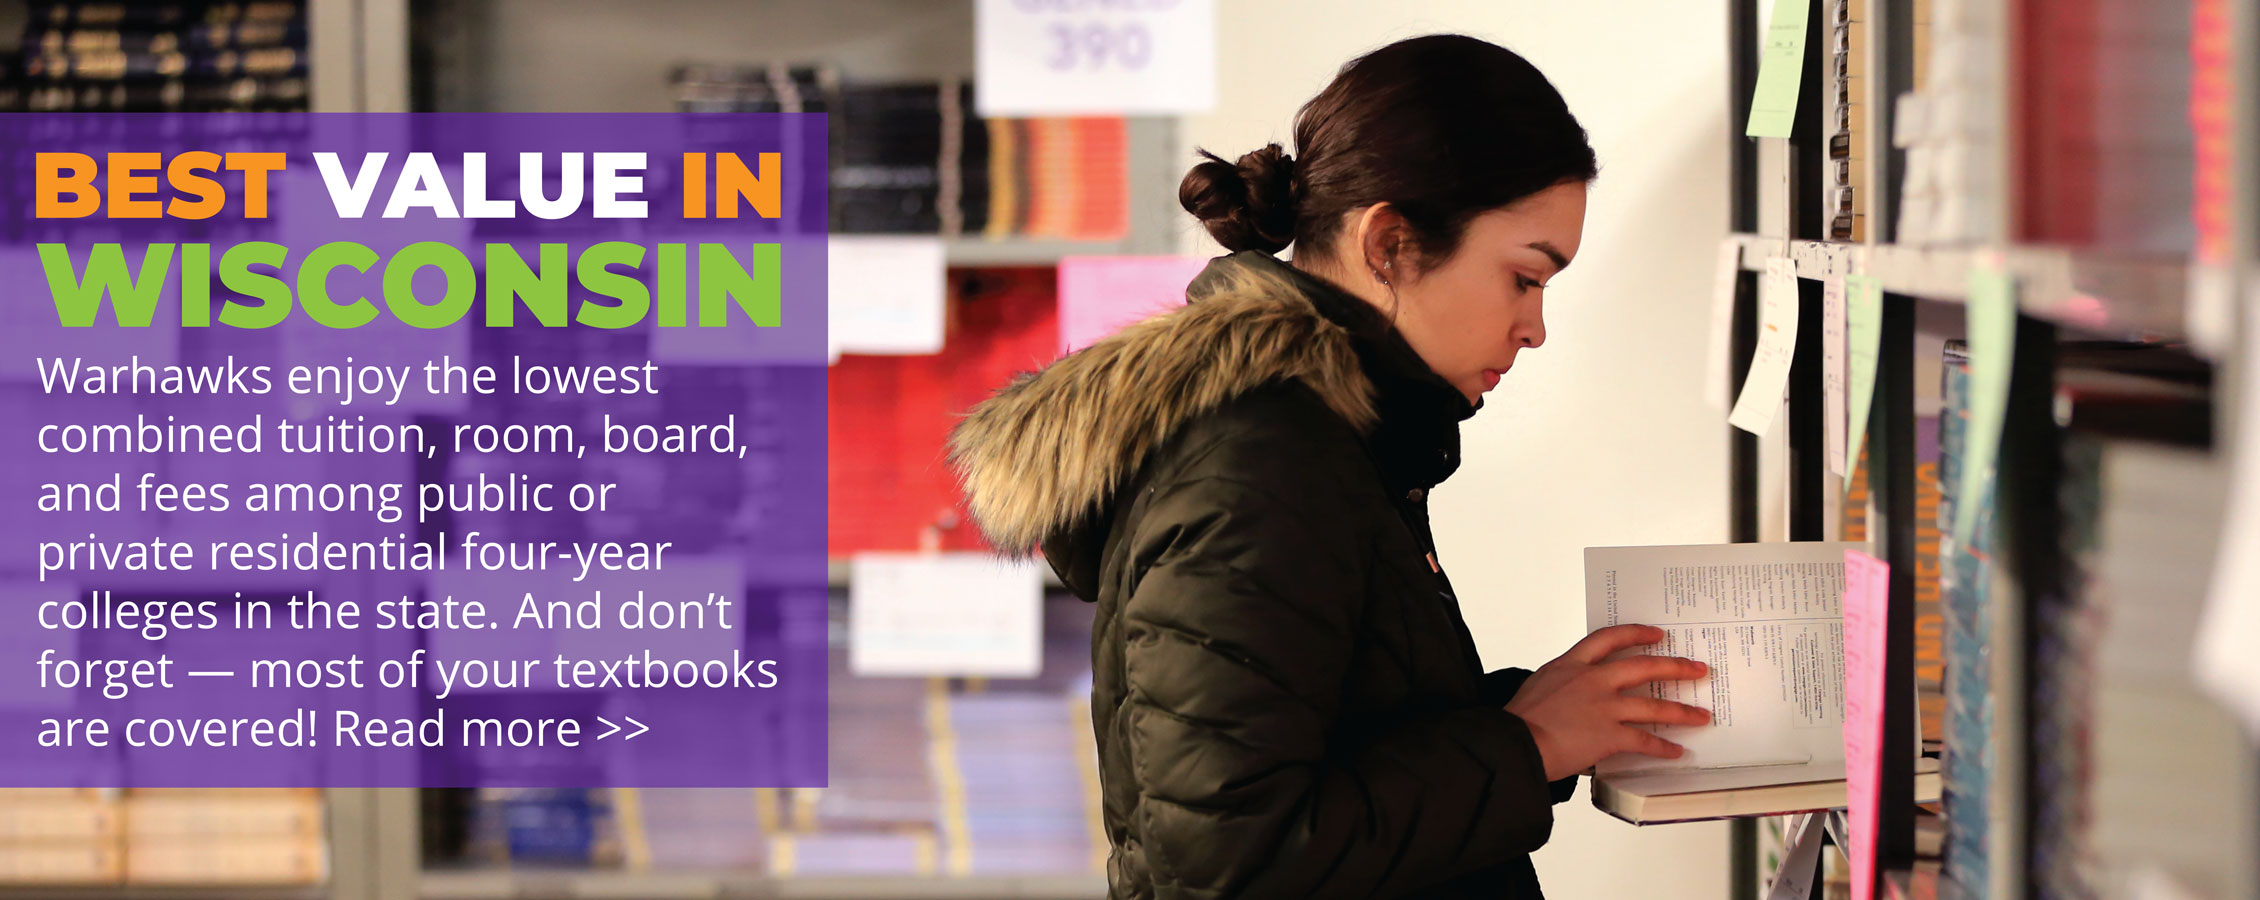 A student looks at books.